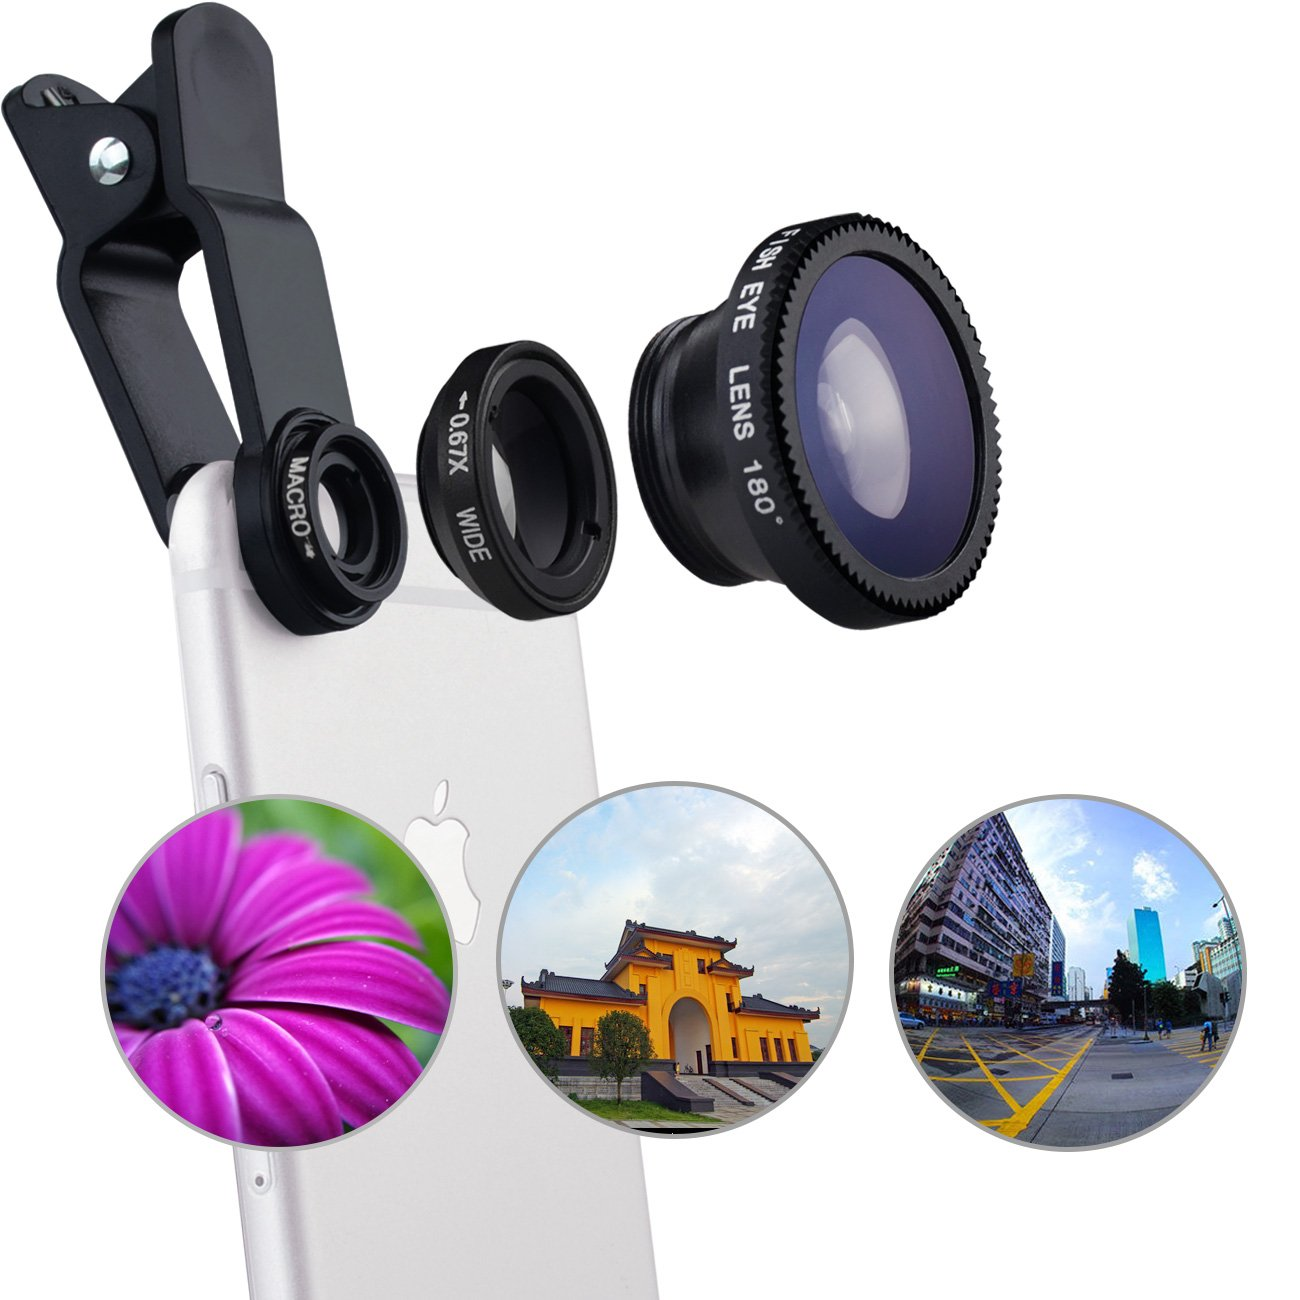 MaxMall 3 in 1 Universal Clip-on Cell Phone Camera Lens Kit ,with 180 Degree Fish Eye Lens + Macro Lens & Wide Angle Lens for iPhone 6s Plus, 6 plus, Samsung s6, Note 4,Sony and More -Black